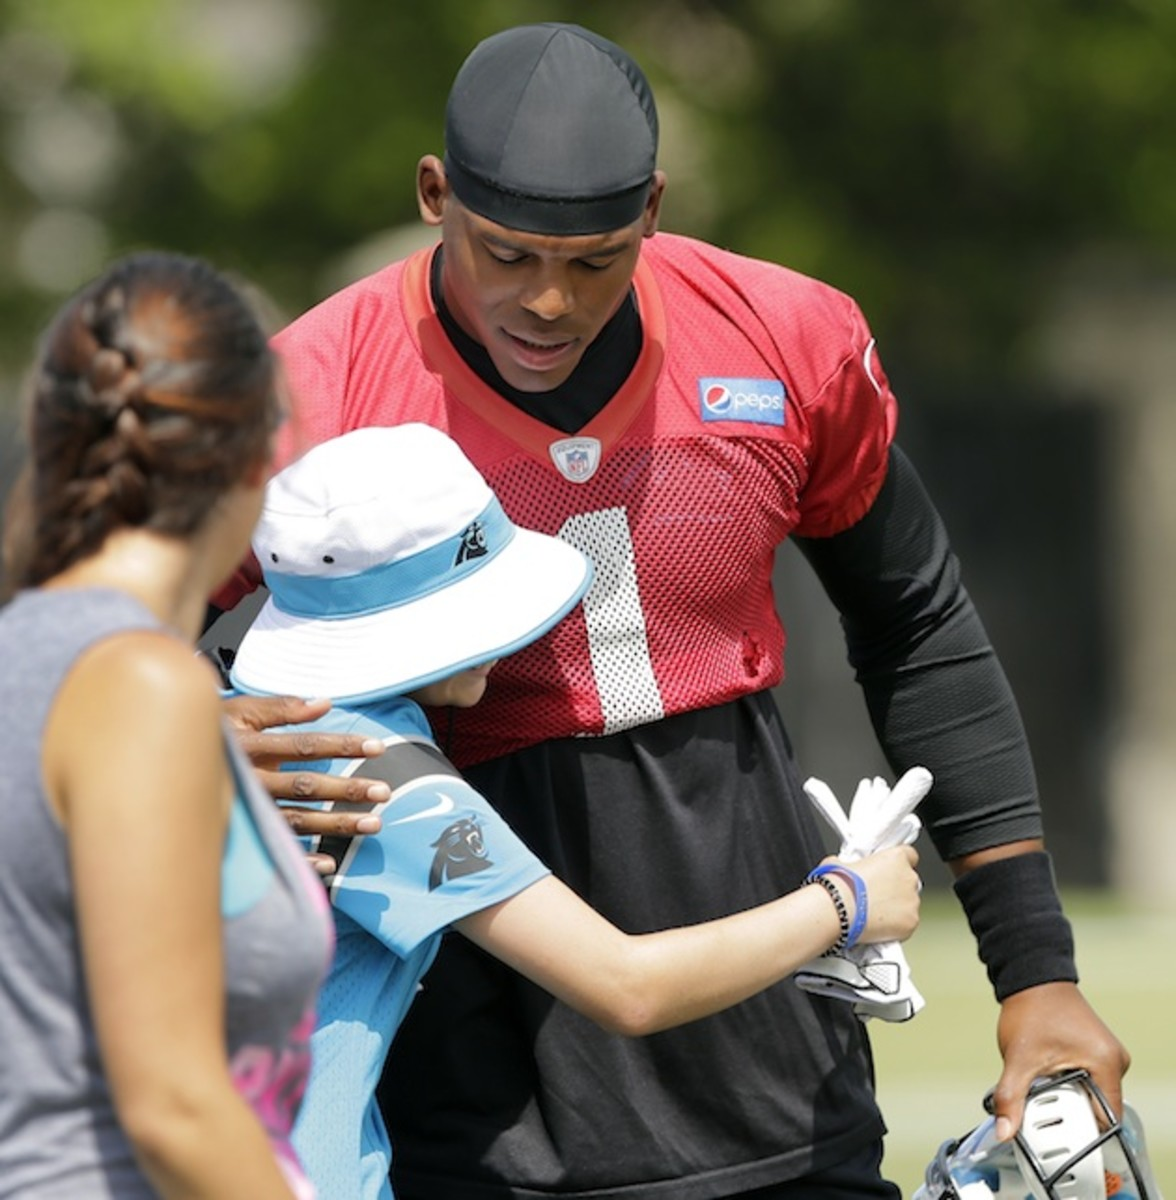 cam-newton-carolina-panthers-angry-mom-fan-letter-hugging-fan.jpg